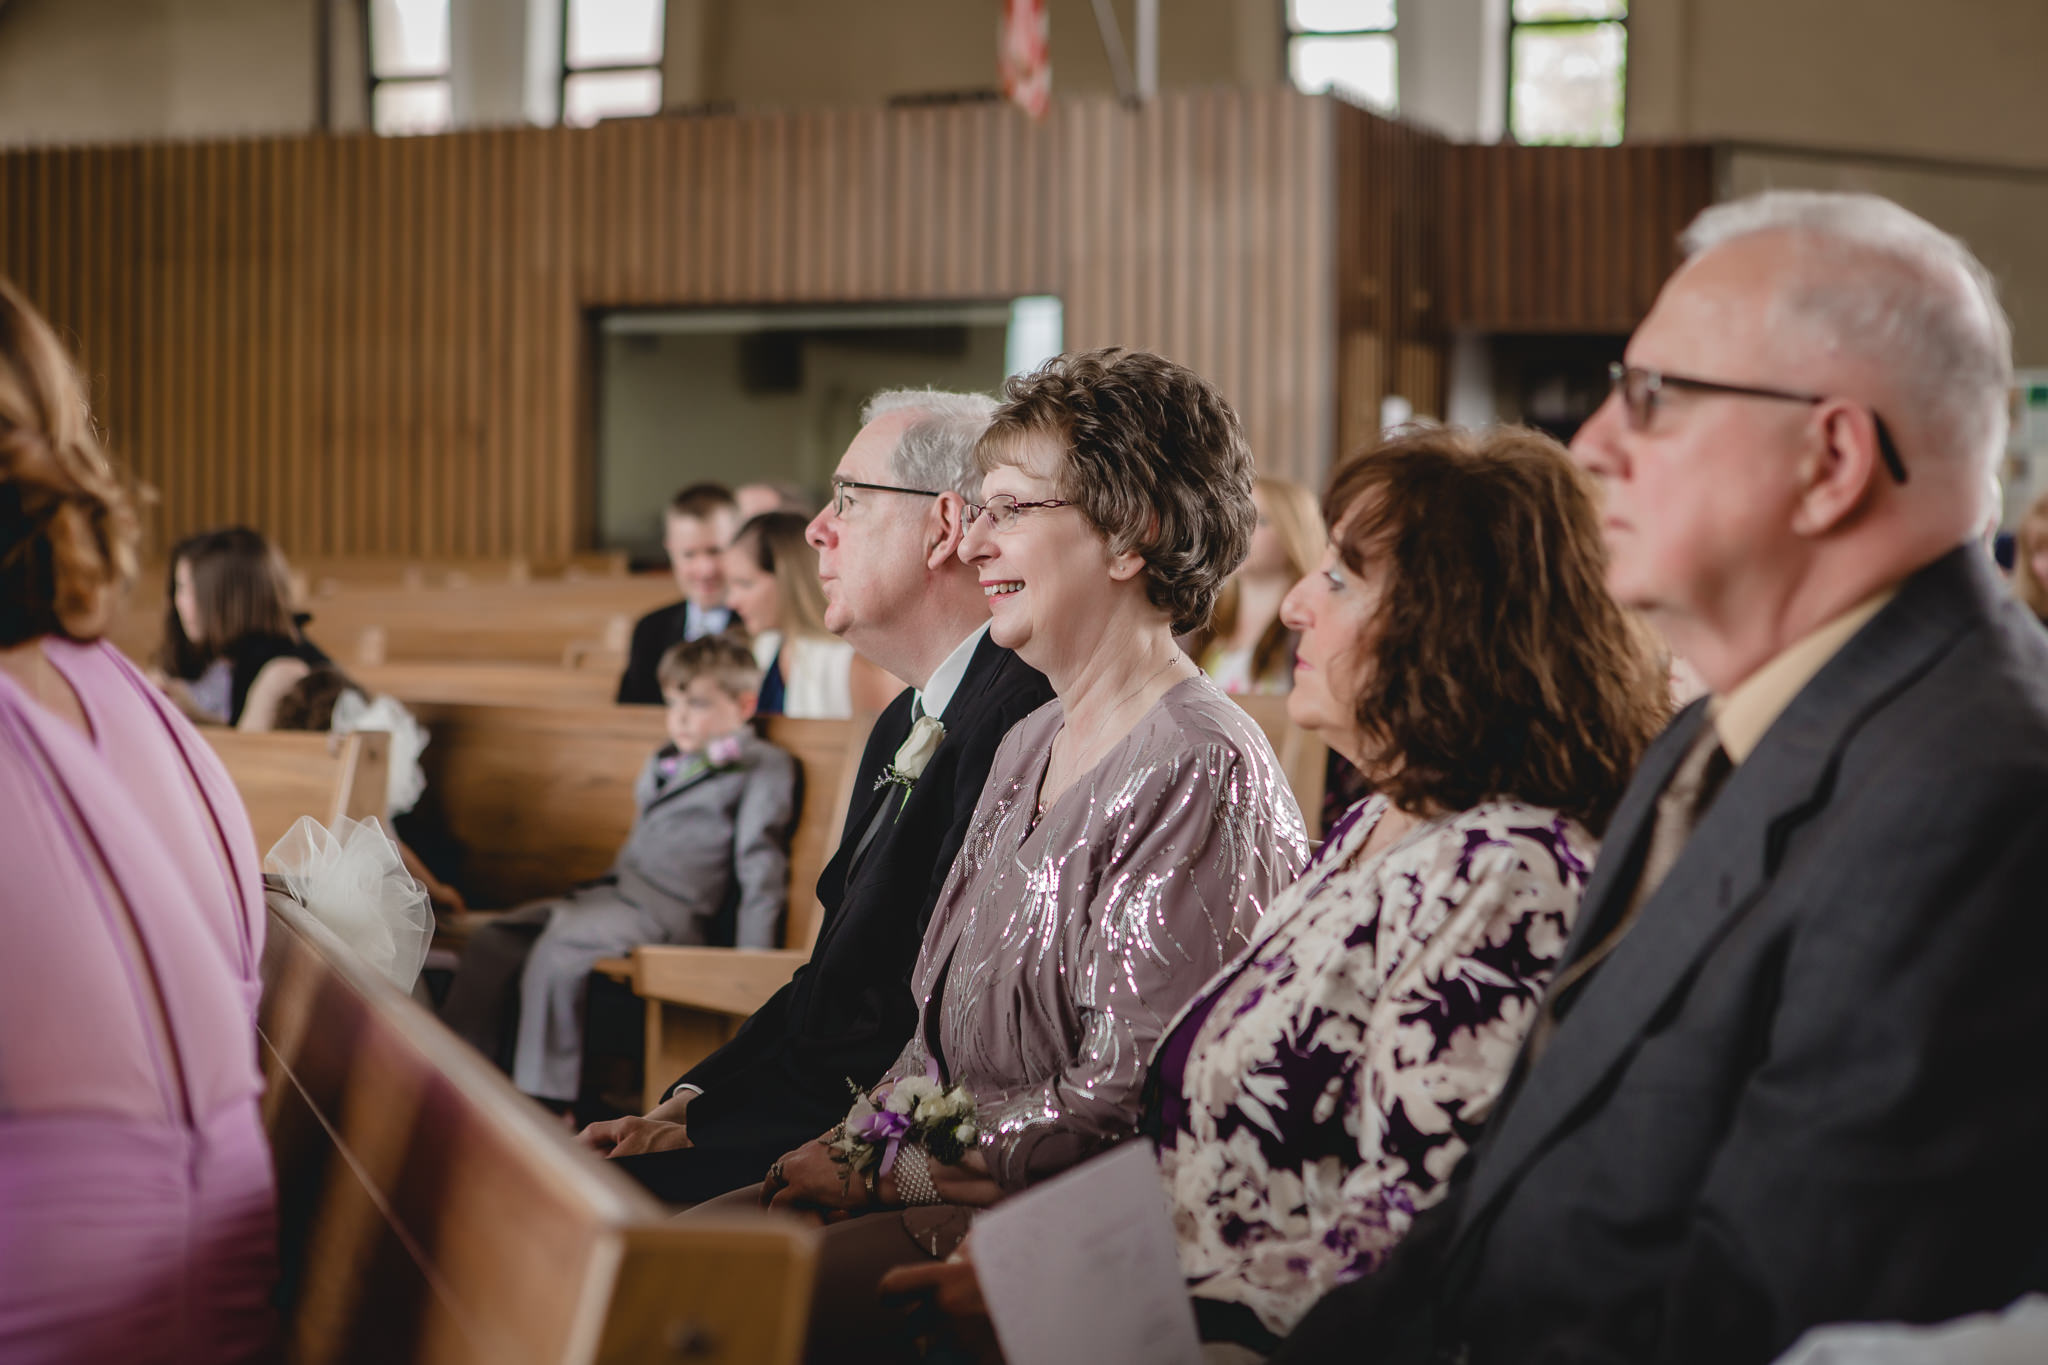 Parents of the bride during St. Malachy wedding ceremony